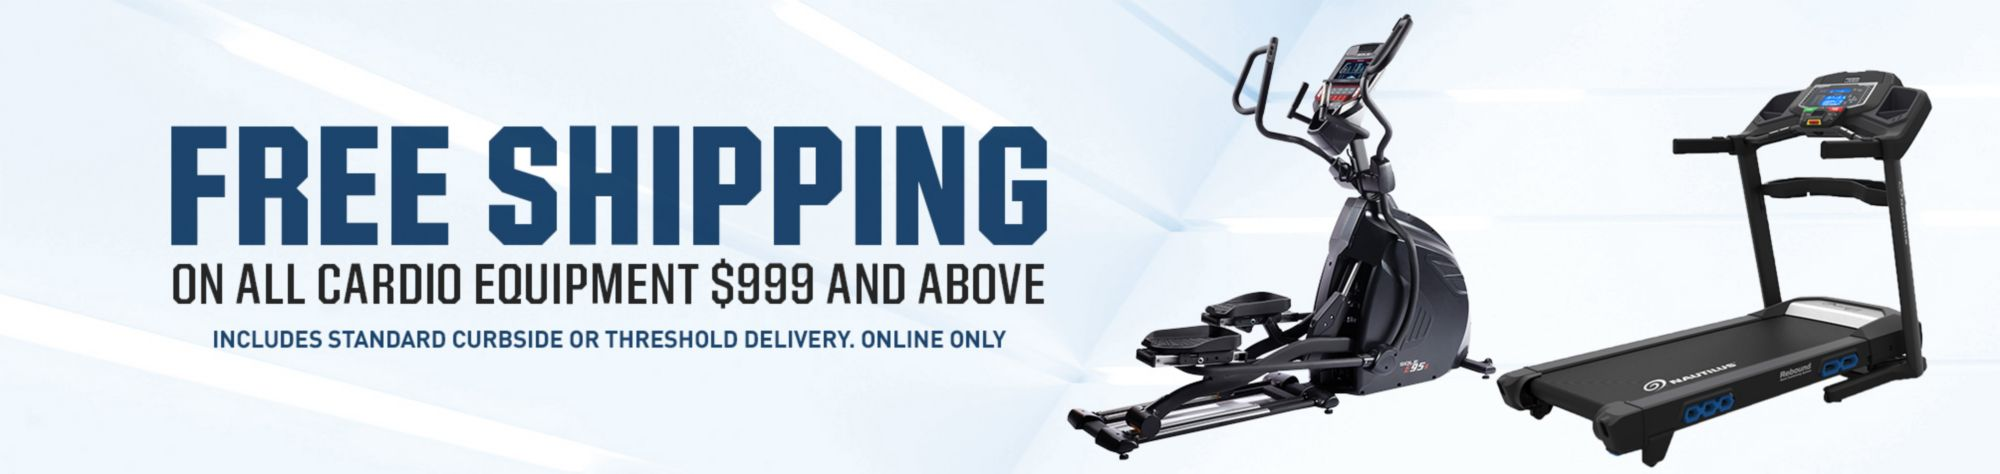 FREE SHIPPING on All Cardio Equipment $999 and Above